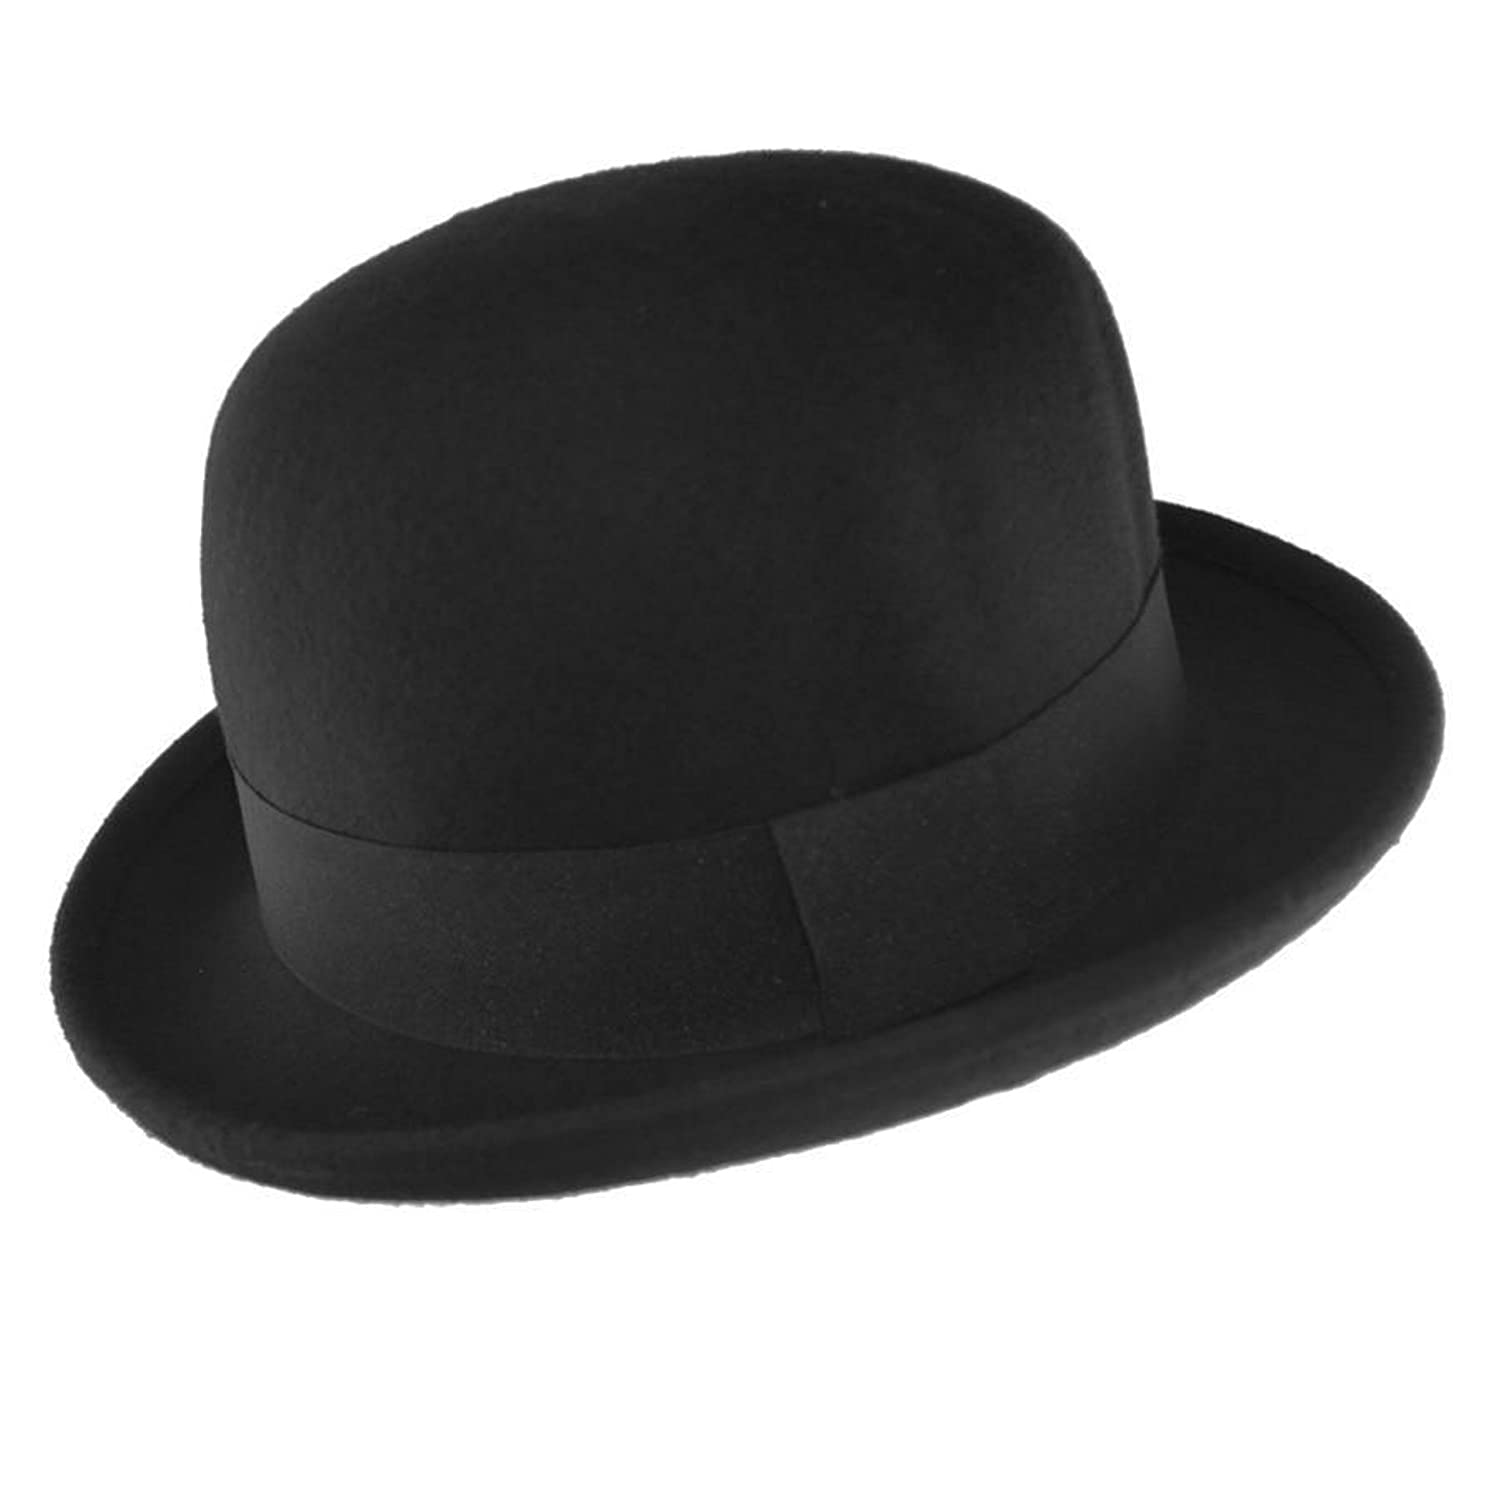 Black 100/% Wool Soft Crushable Bowler Hat 4 Sizes